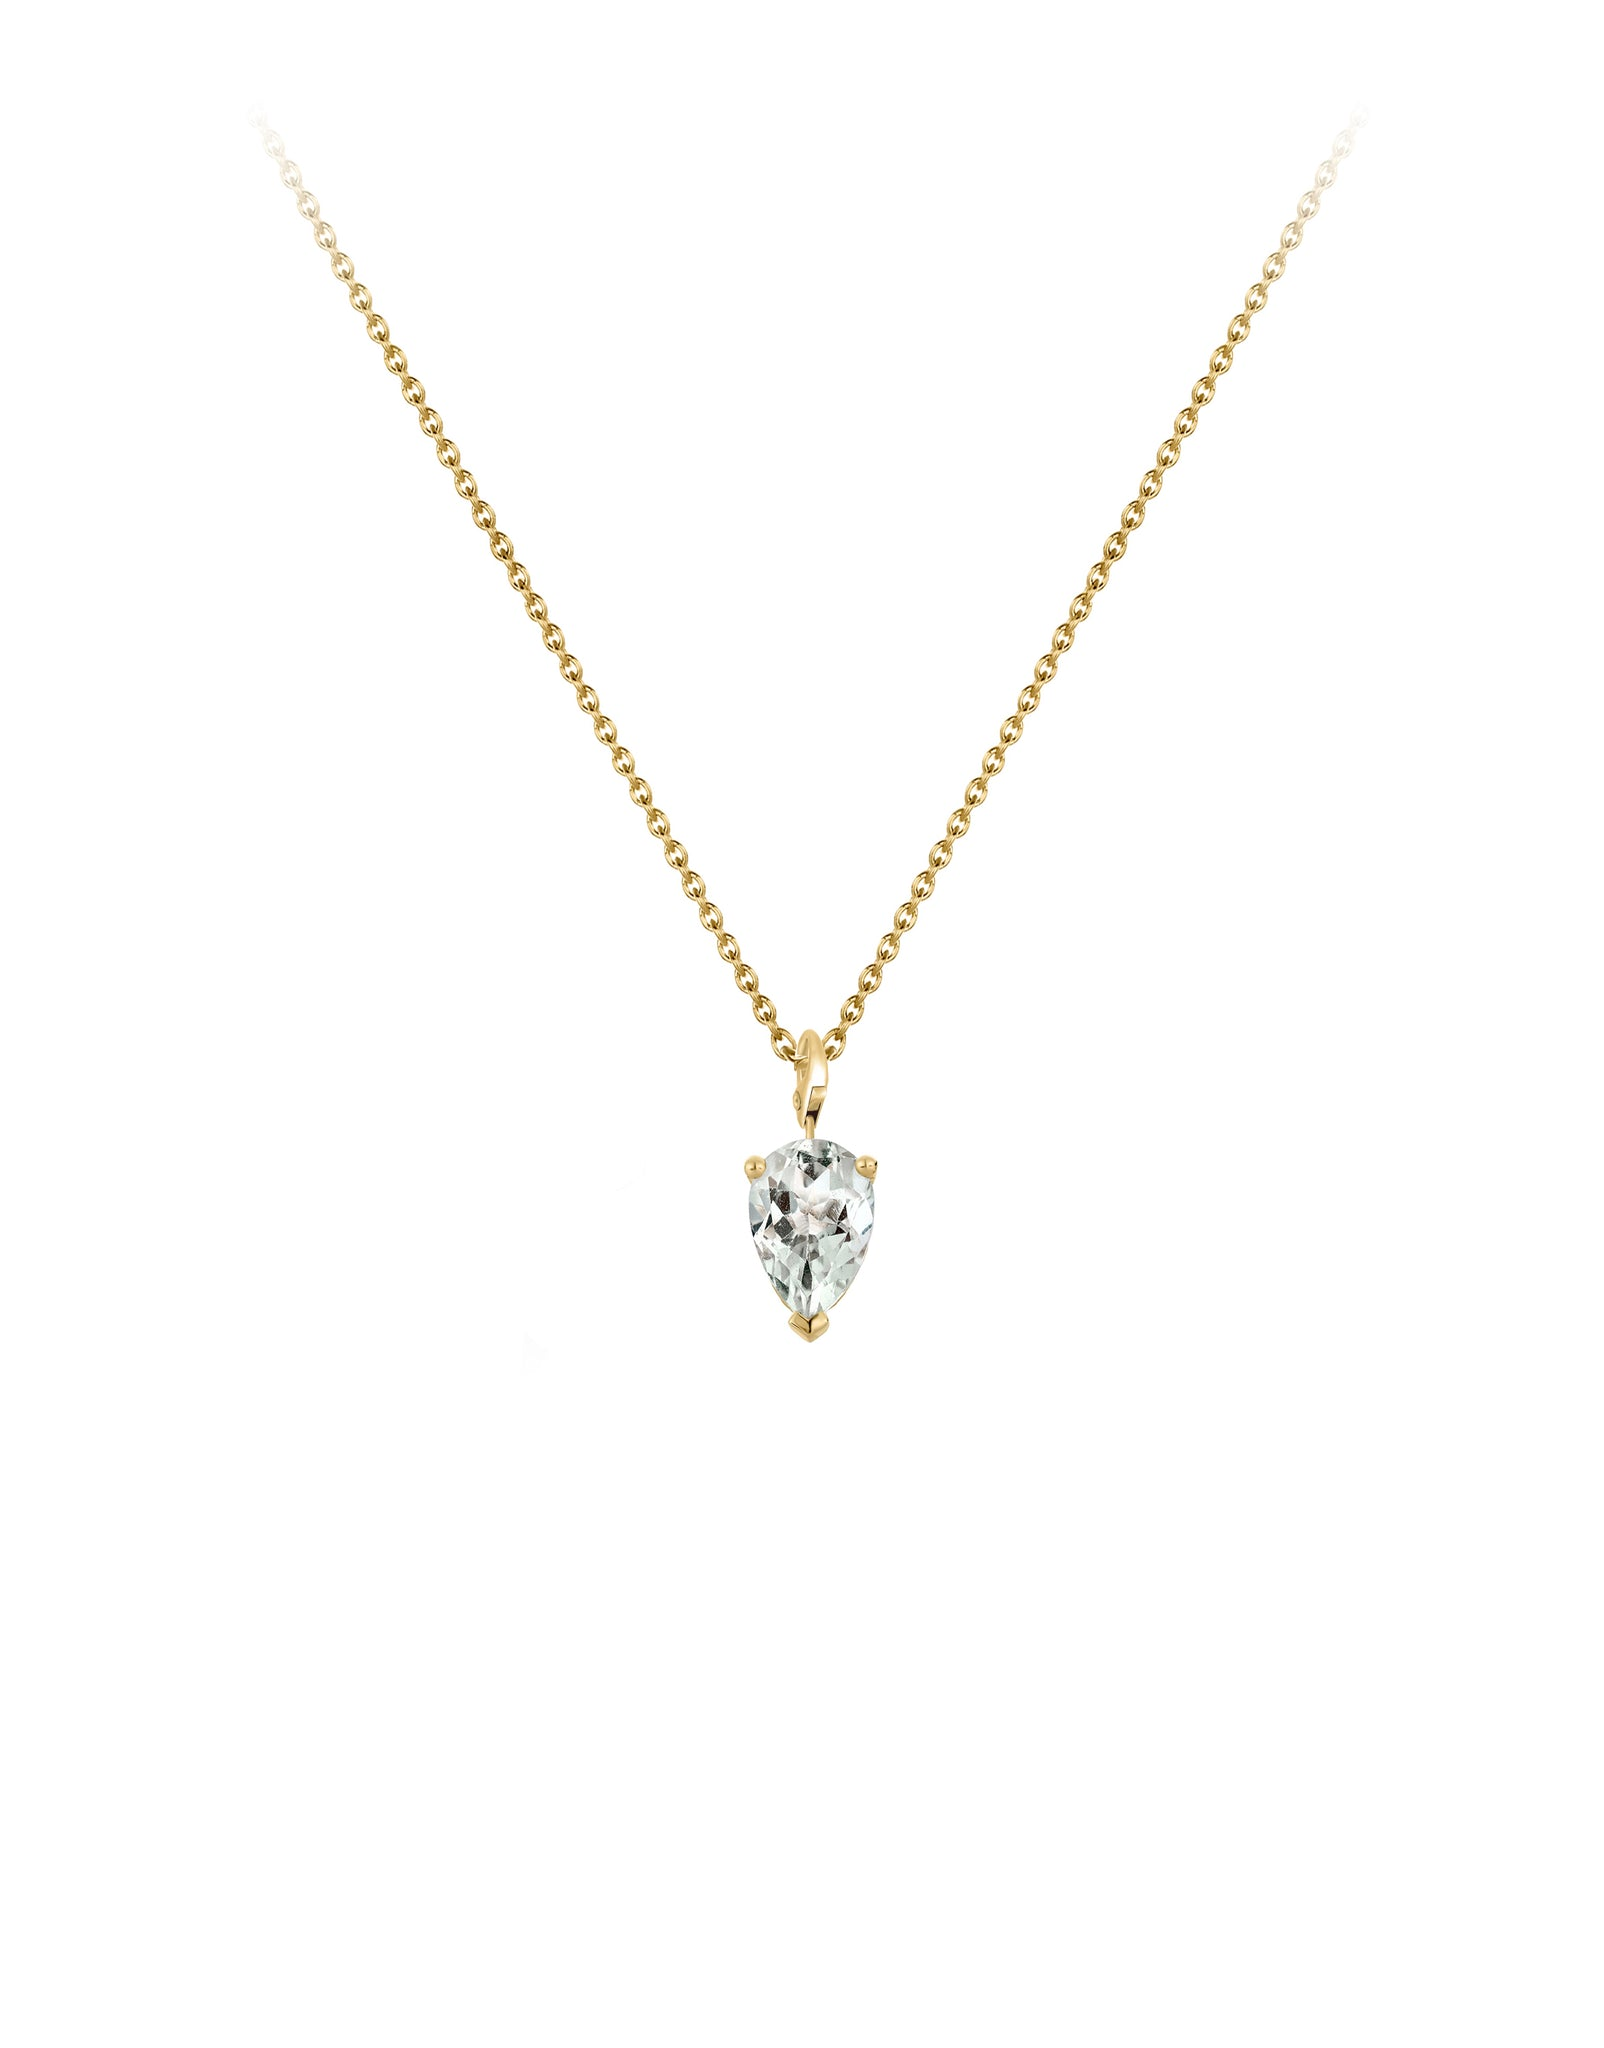 Necklace 9K gold green amethyst - bloom necklace amethyst - Nayestones